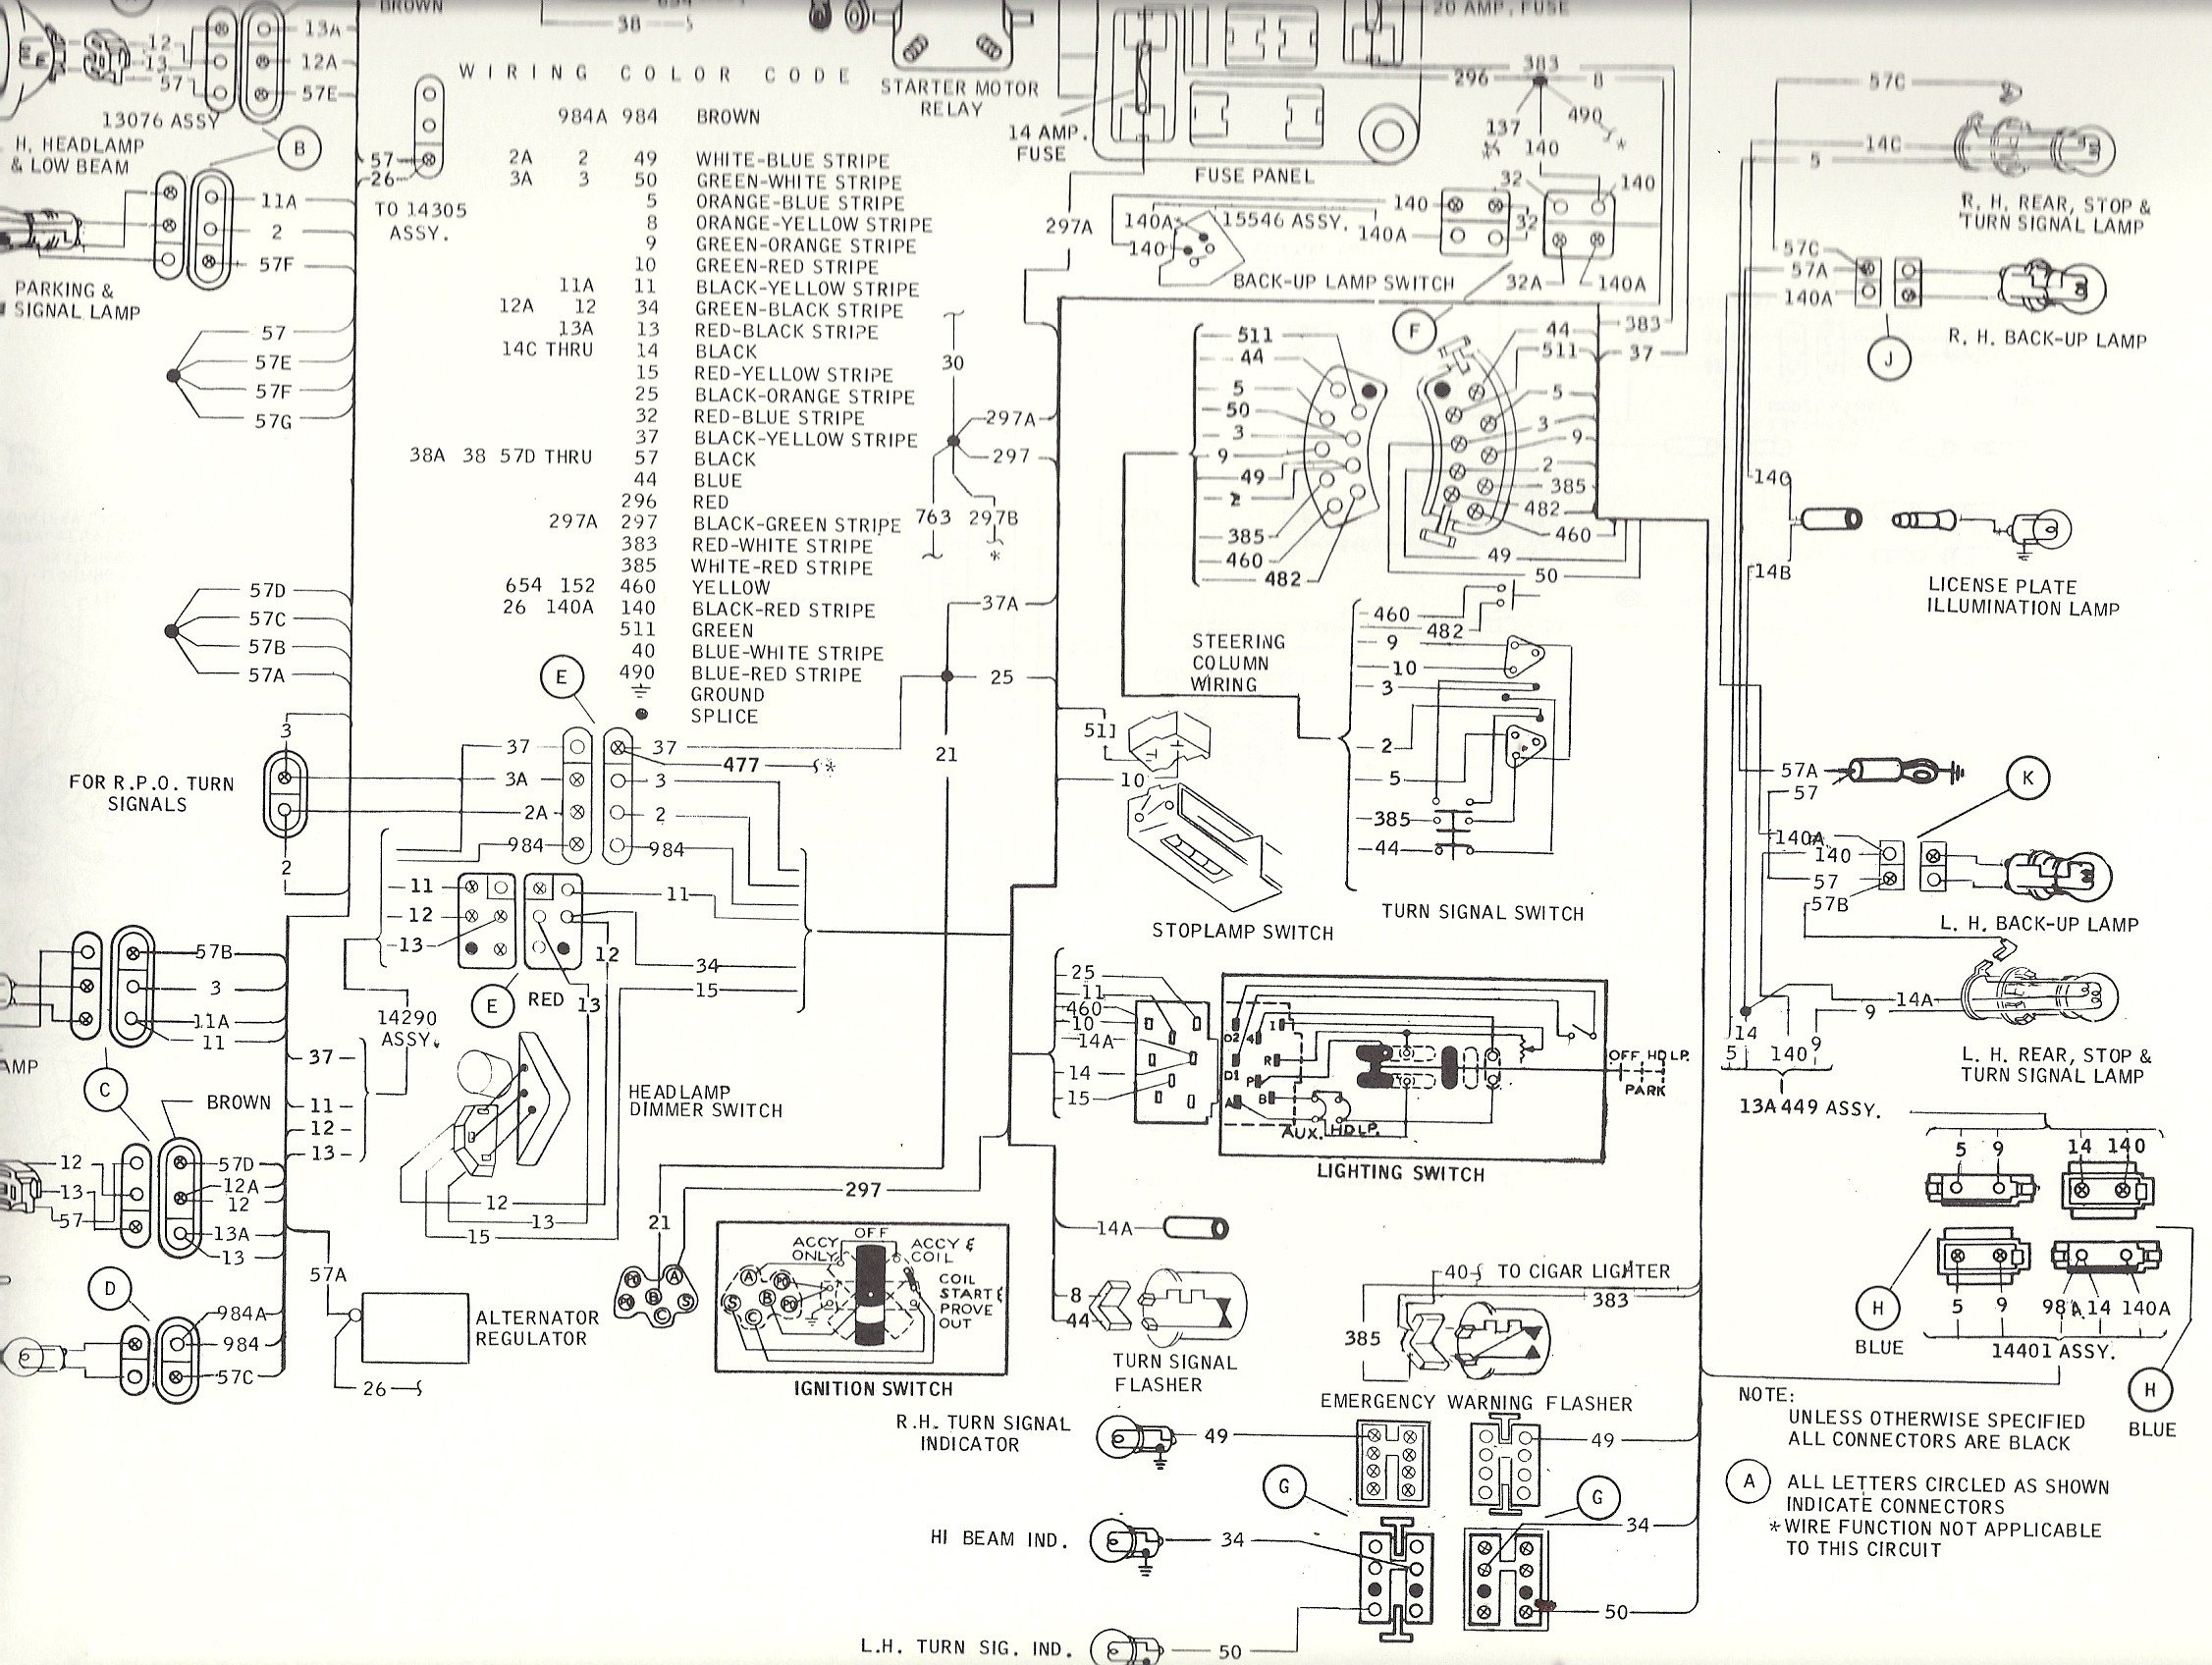 1967 mustang wiring diagram 1967 mustang radio wiring diagram 1967 Cougar Wiring Diagram 1969 cougar wiring diagram